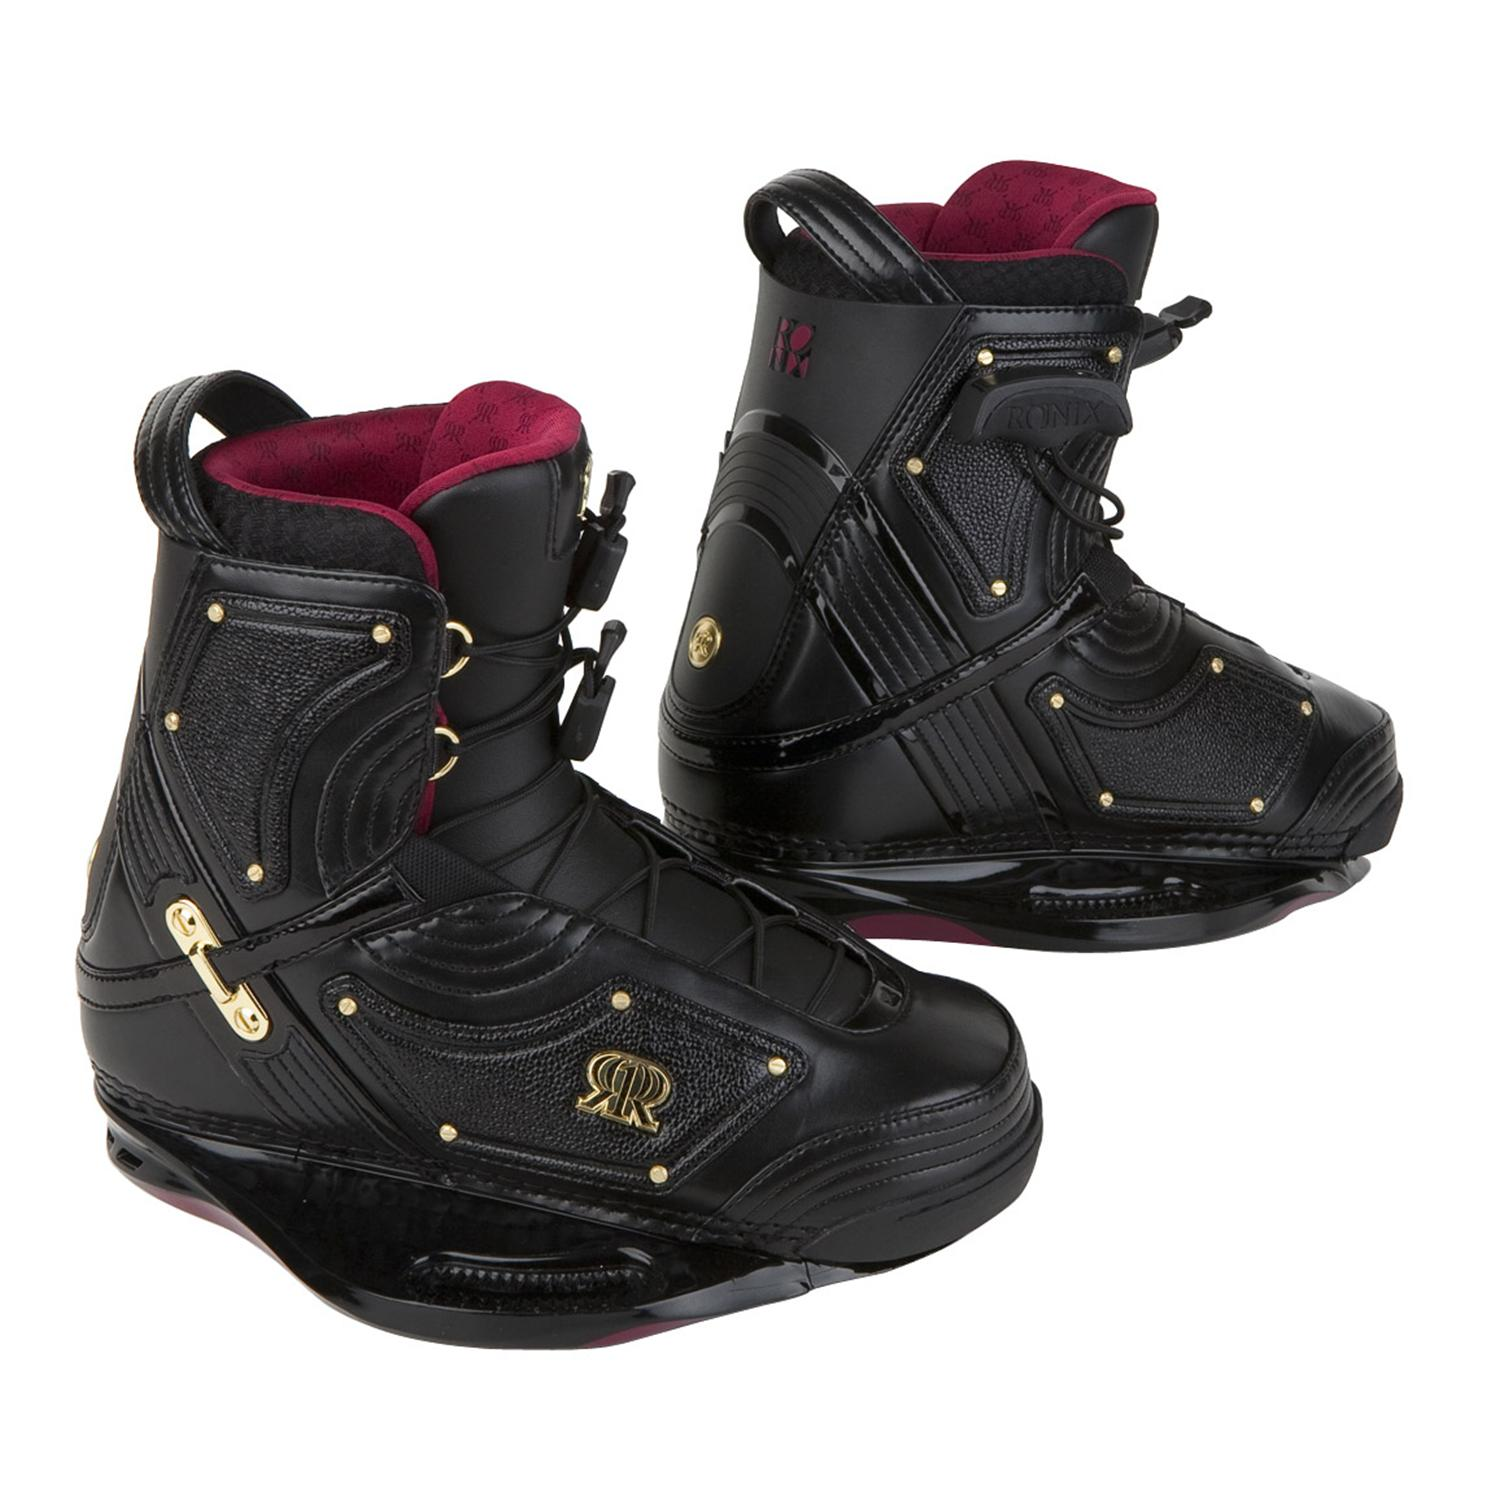 ronix faith wakeboard boots s 2010 evo